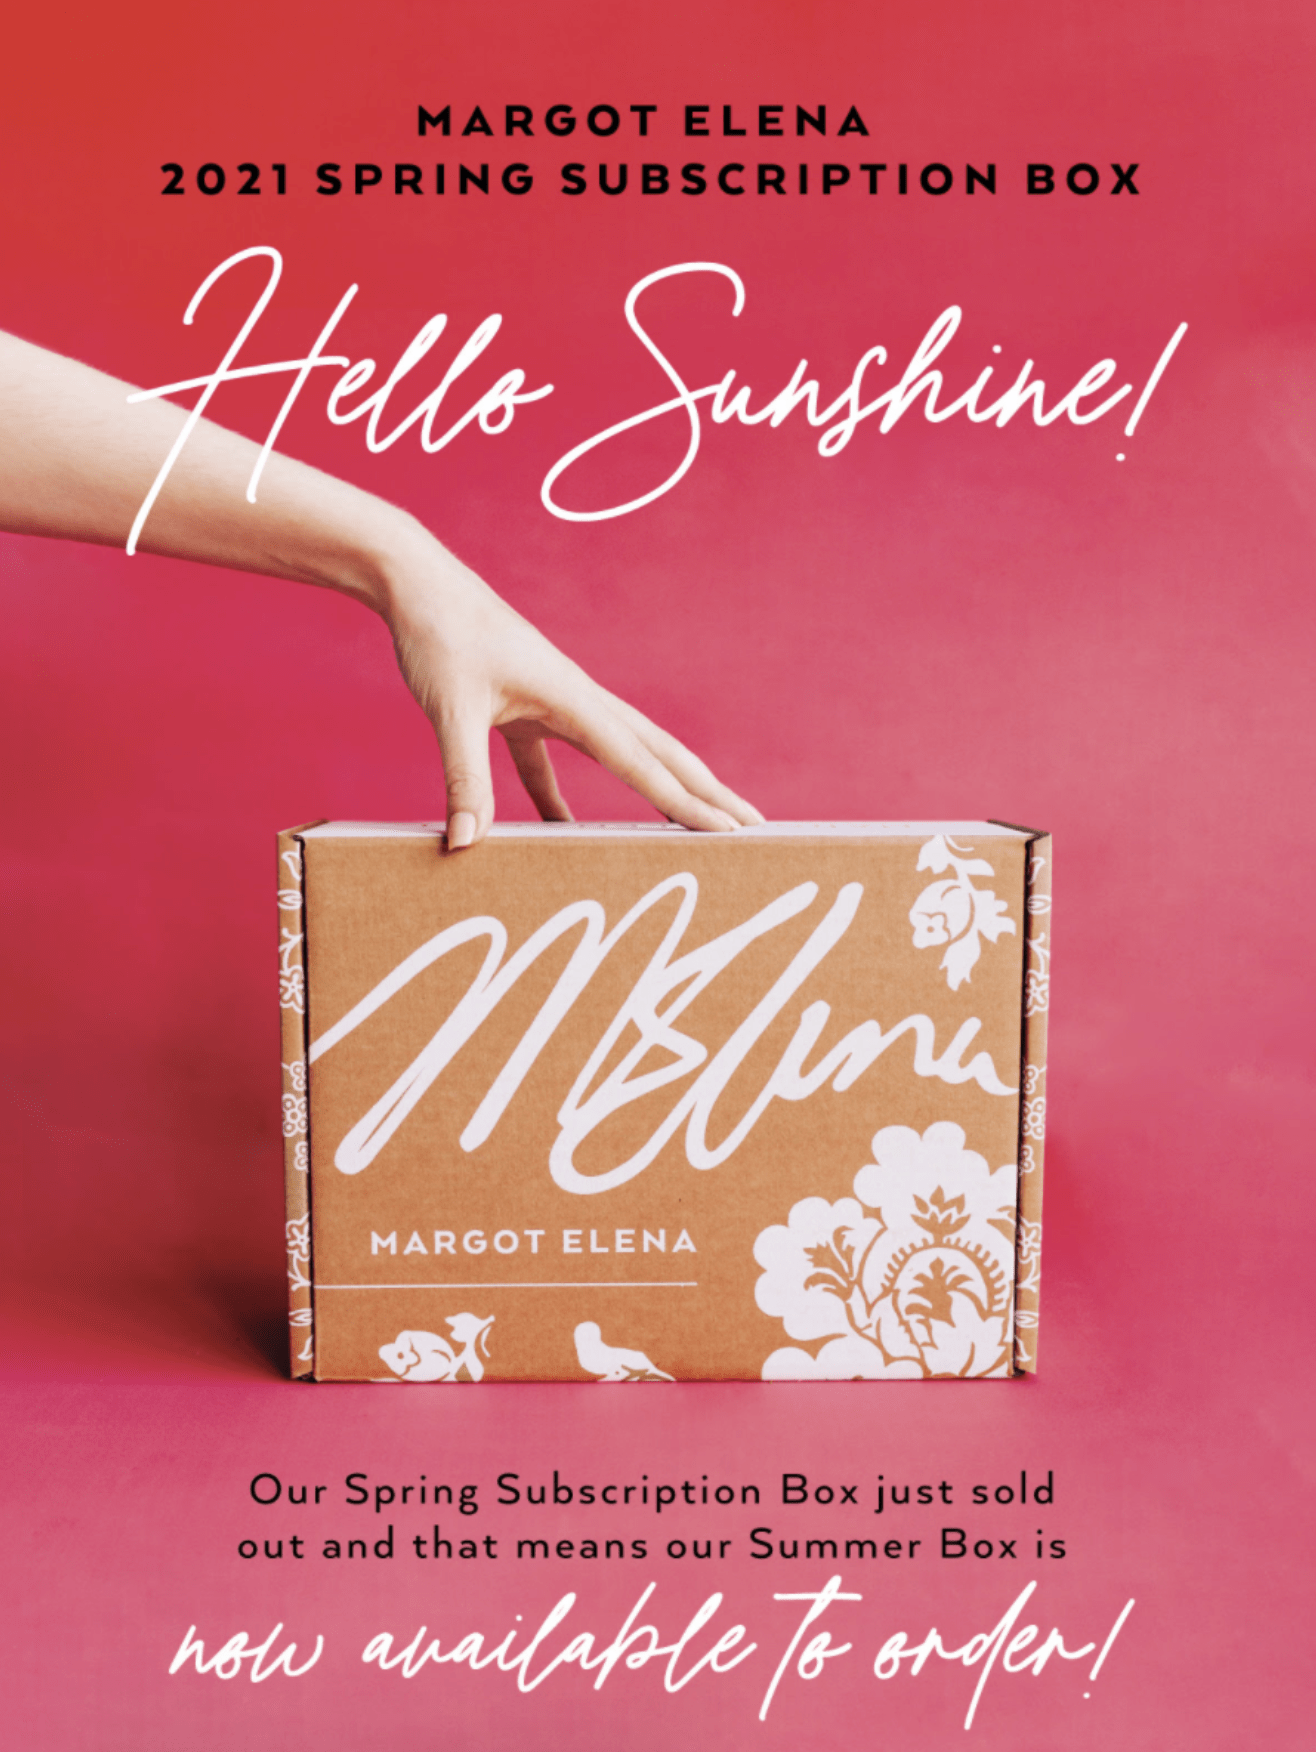 Margot Elena Seasonal Discovery Box Summer 2021 Box – On Sale Now